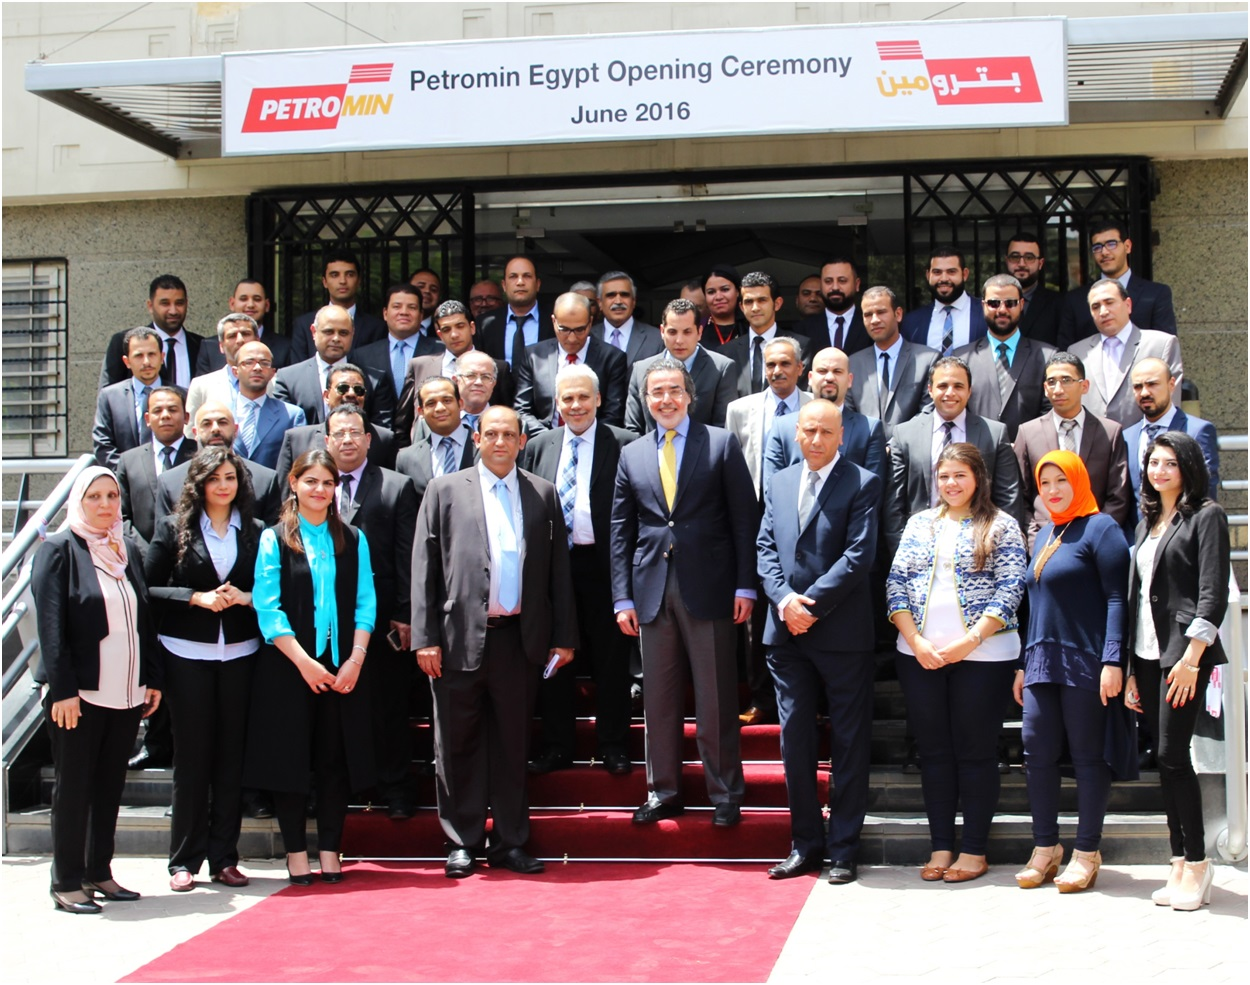 petromin-to-invest-250m-pounds-in-egyptcreating-1000-jobs-by-2020